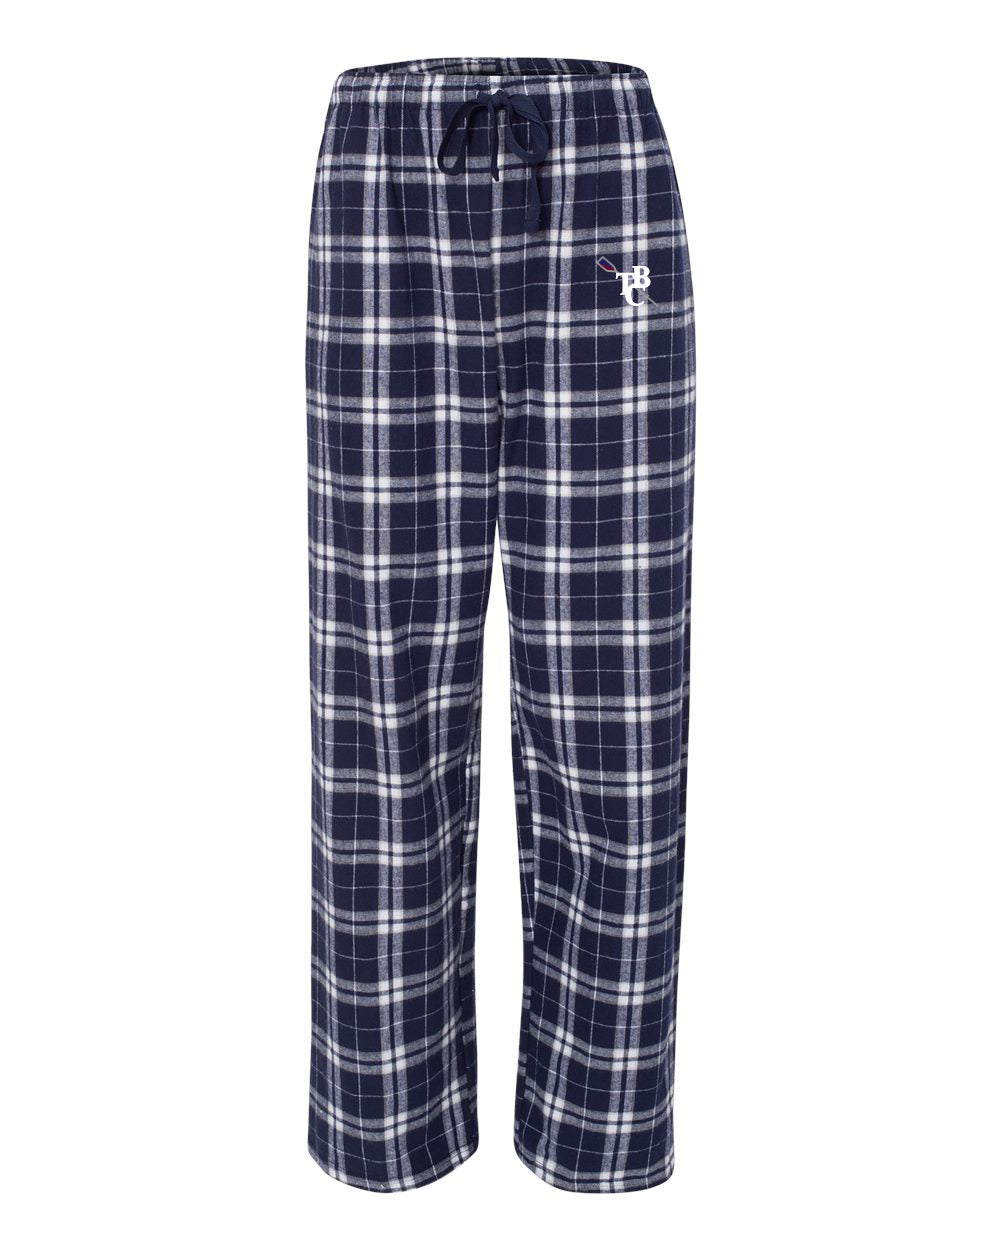 TBC Flannel Pants